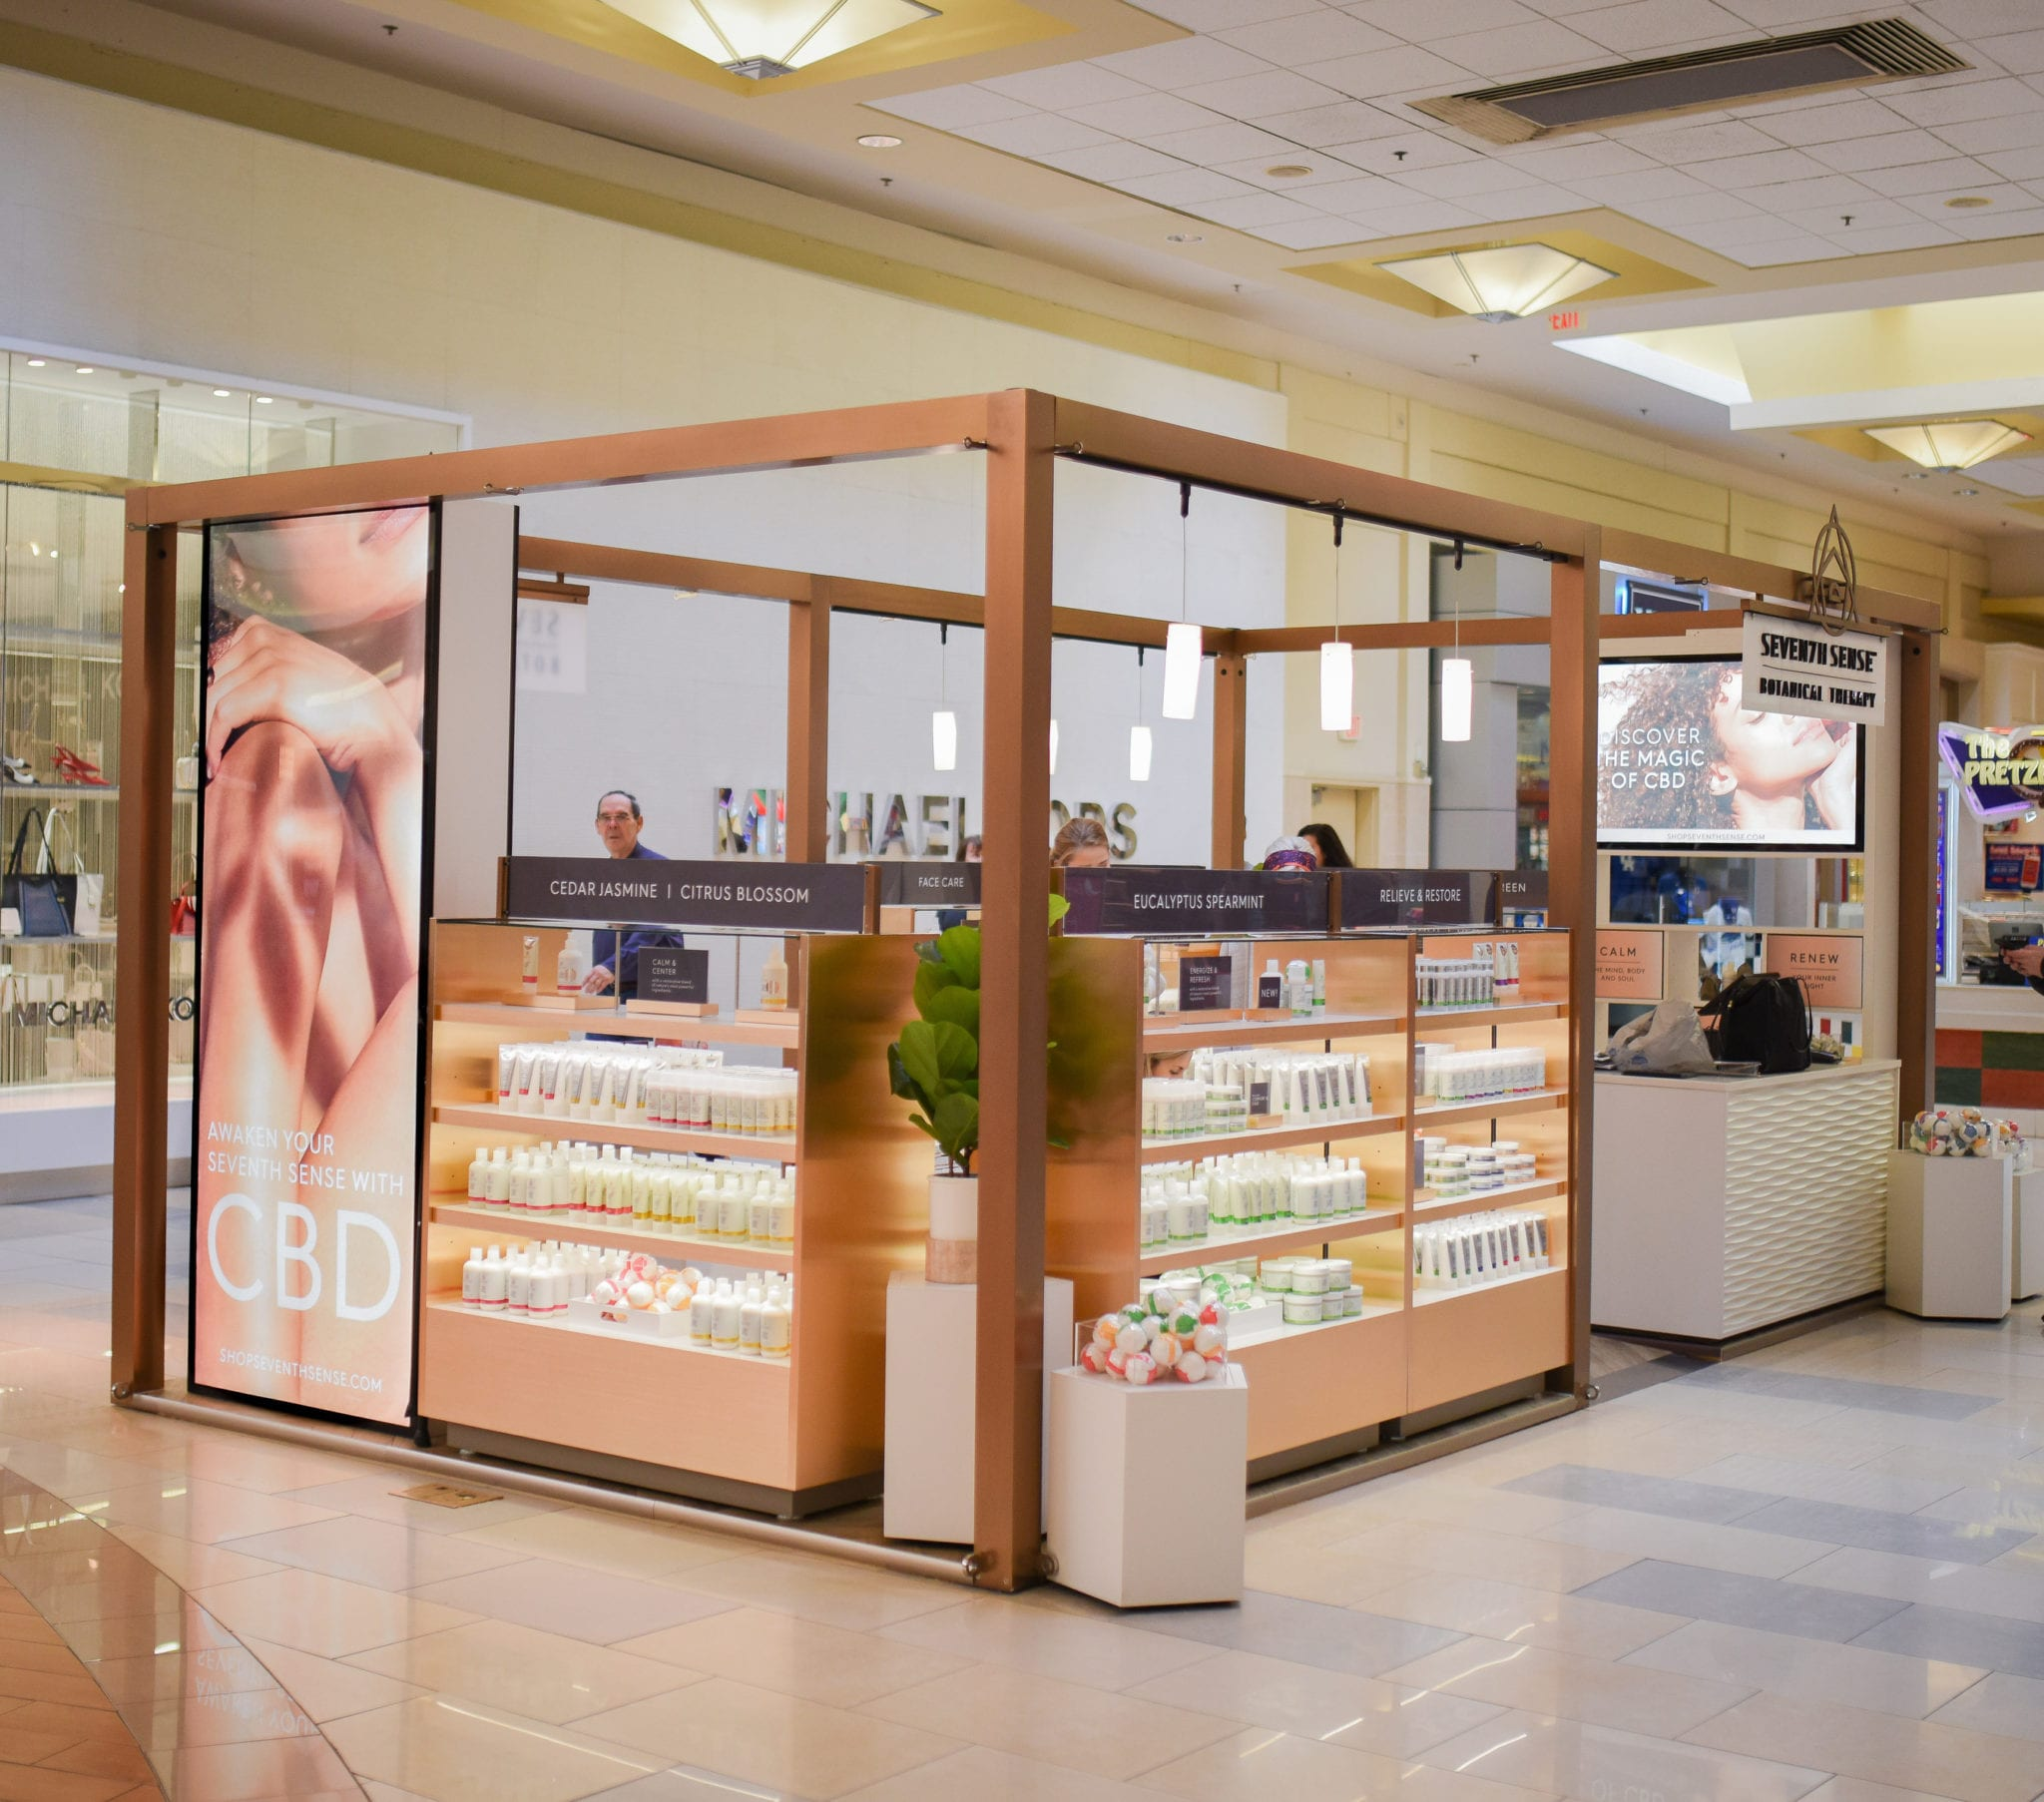 Green Growth Brands Inc. (CSE:GGB) said Monday it inked a deal to open up 70 new CBD stores at shopping centers operated by Brookfield Properties across the U.S.